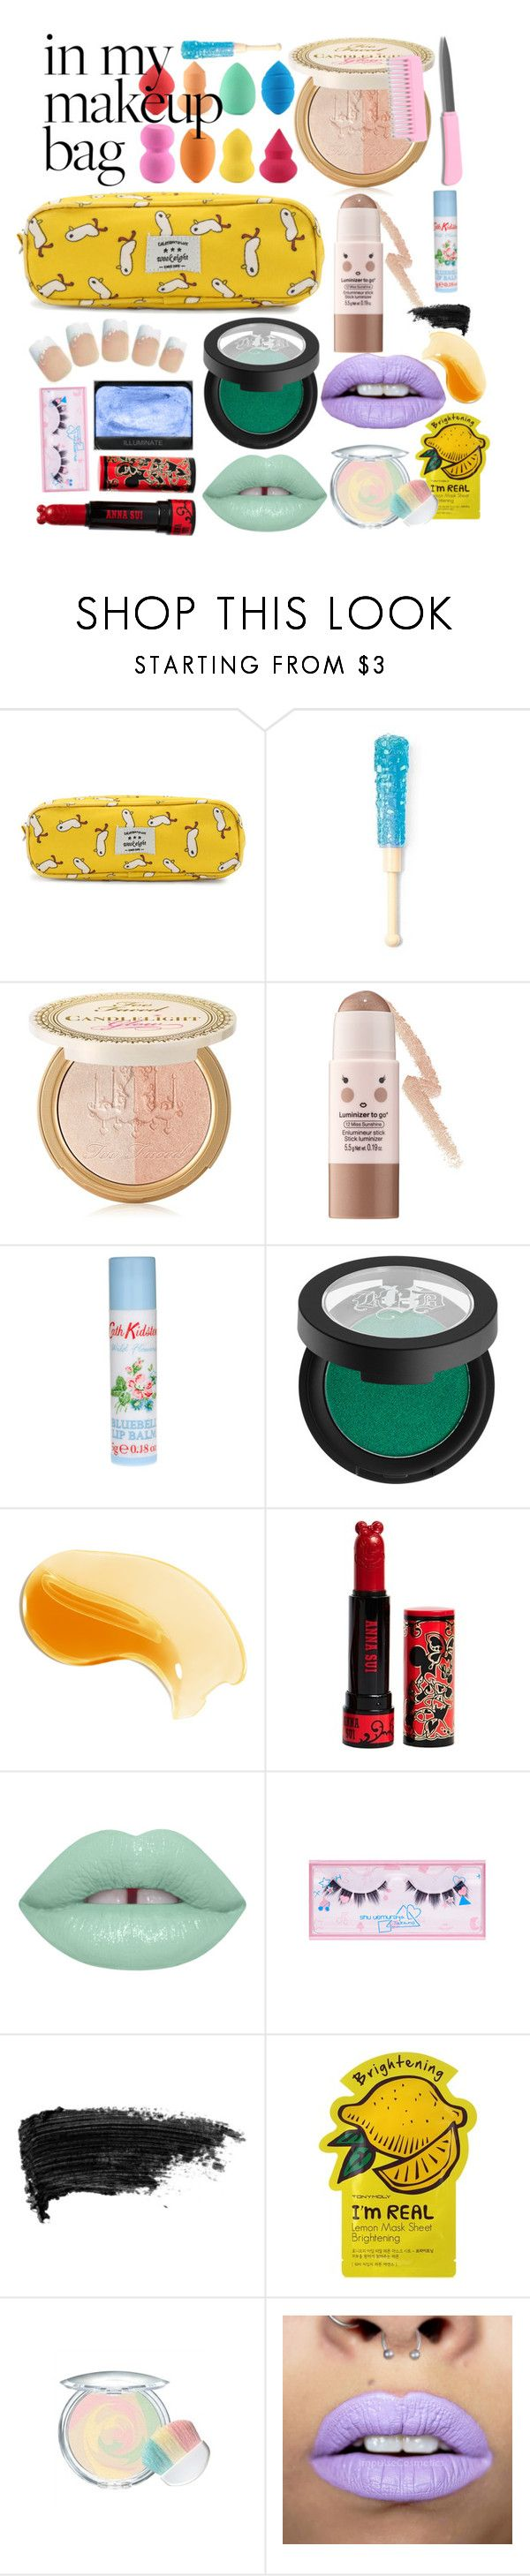 """""""god i wish that were me"""" by thrakaboom ❤ liked on Polyvore featuring beauty, Too Faced Cosmetics, Sephora Collection, Cath Kidston, Kat Von D, NARS Cosmetics, Anna Sui, Lime Crime, shu uemura and Stila"""